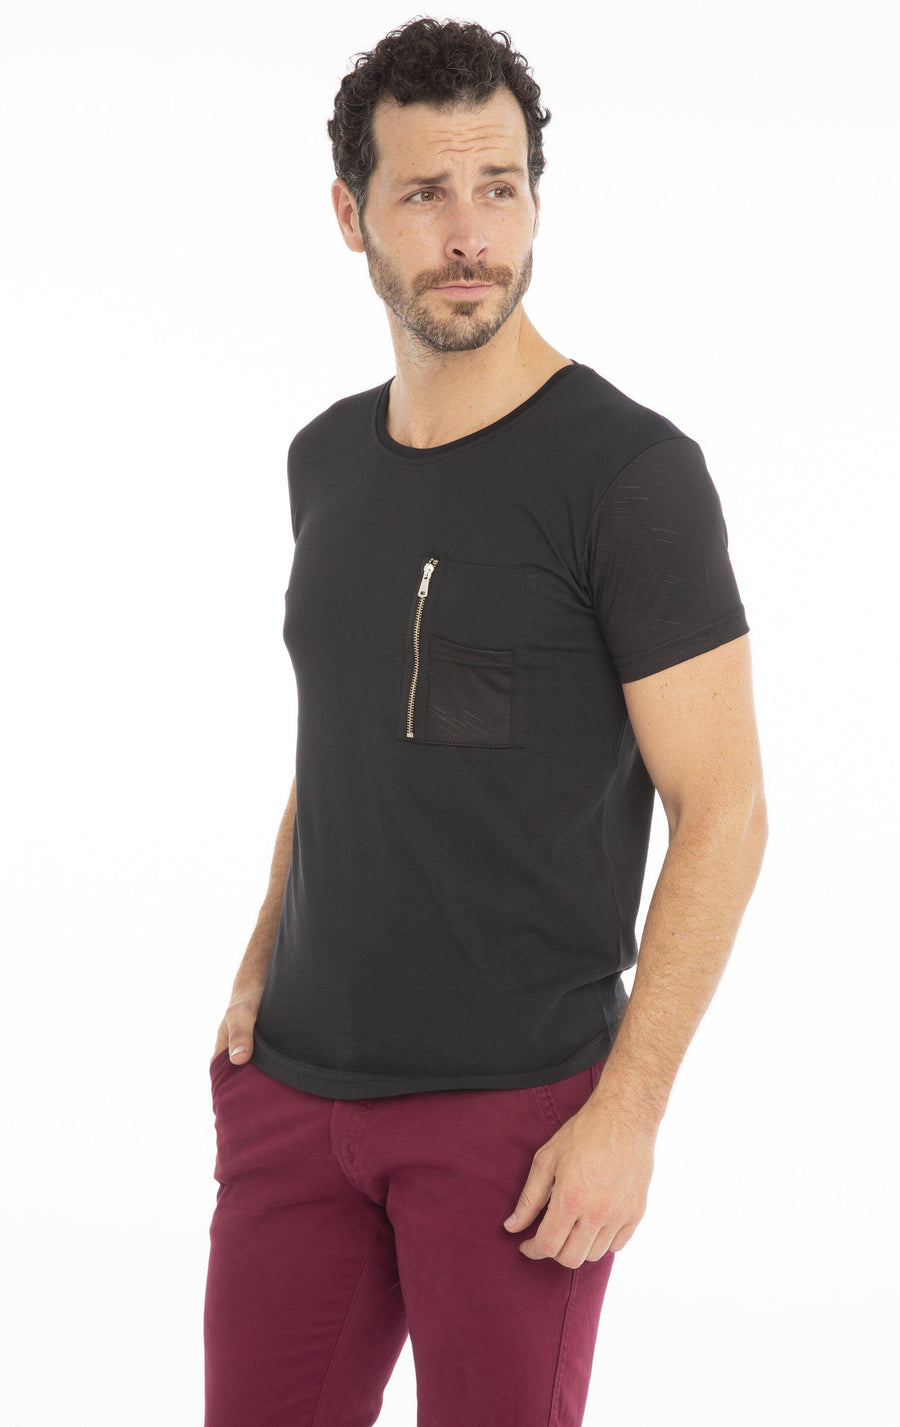 Zip Pocket Fitted T-shirt - Black